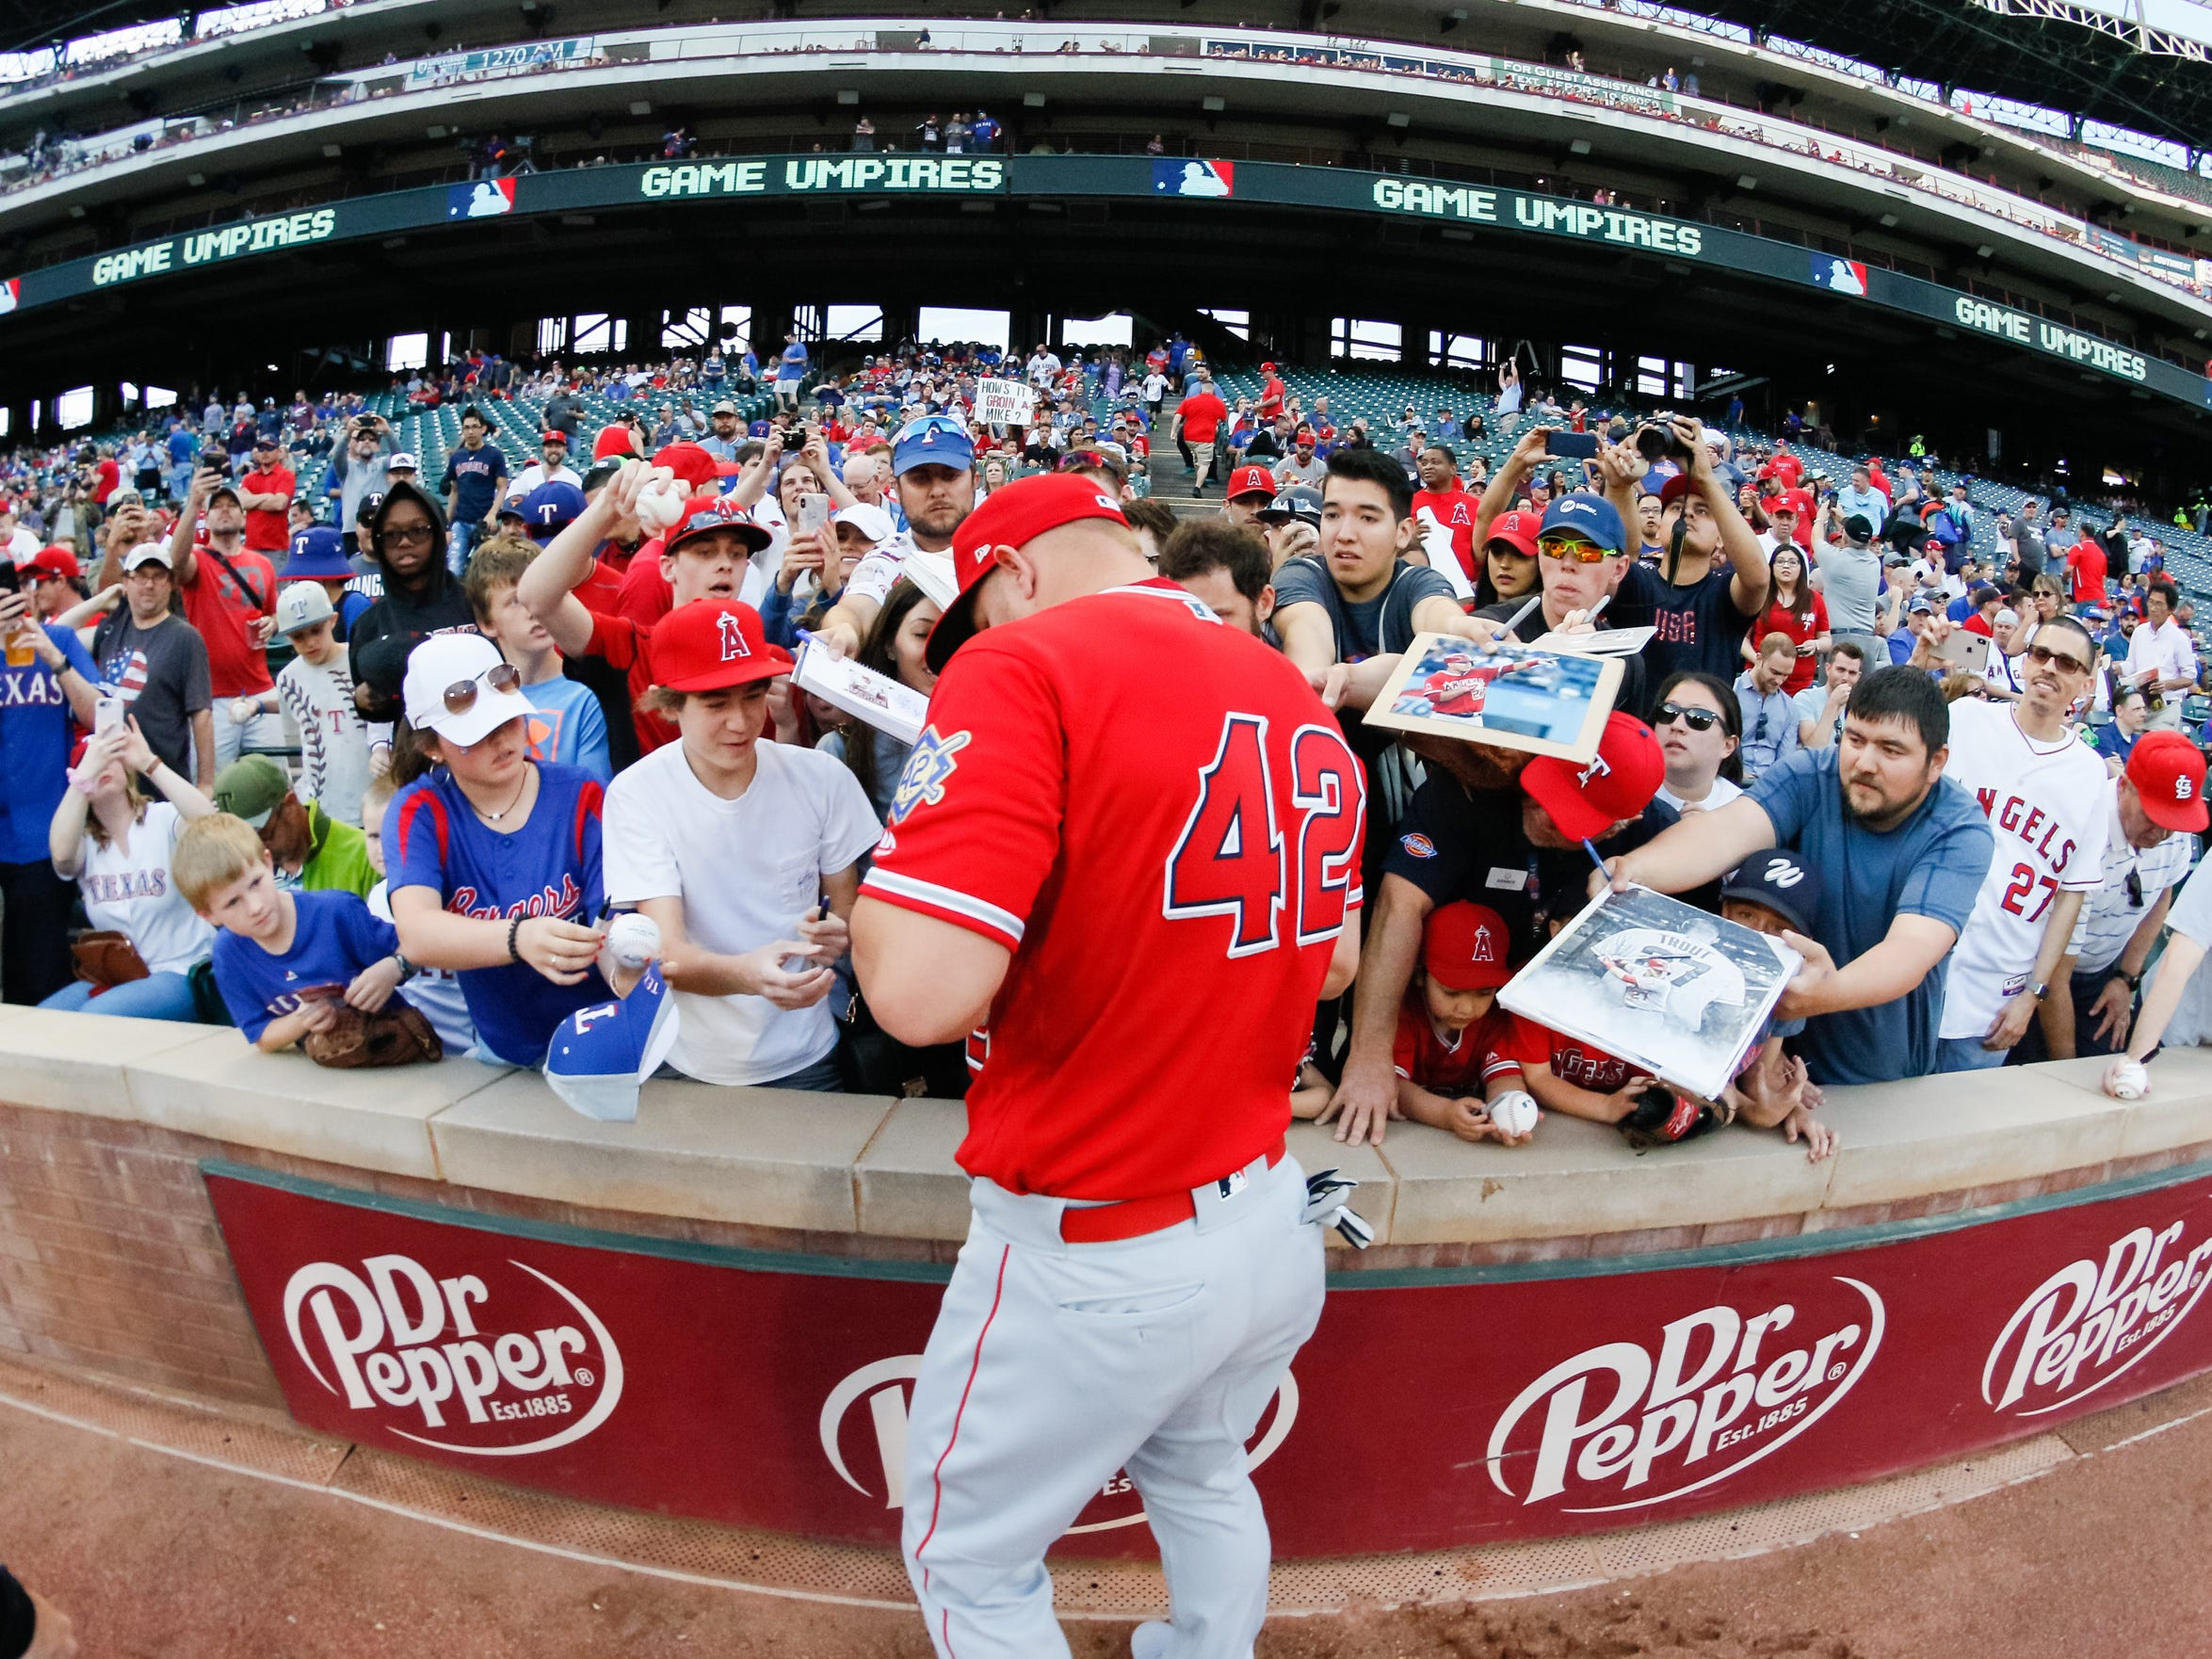 Angels center fielder Mike Trout, wearing No. 42, signs autographs.